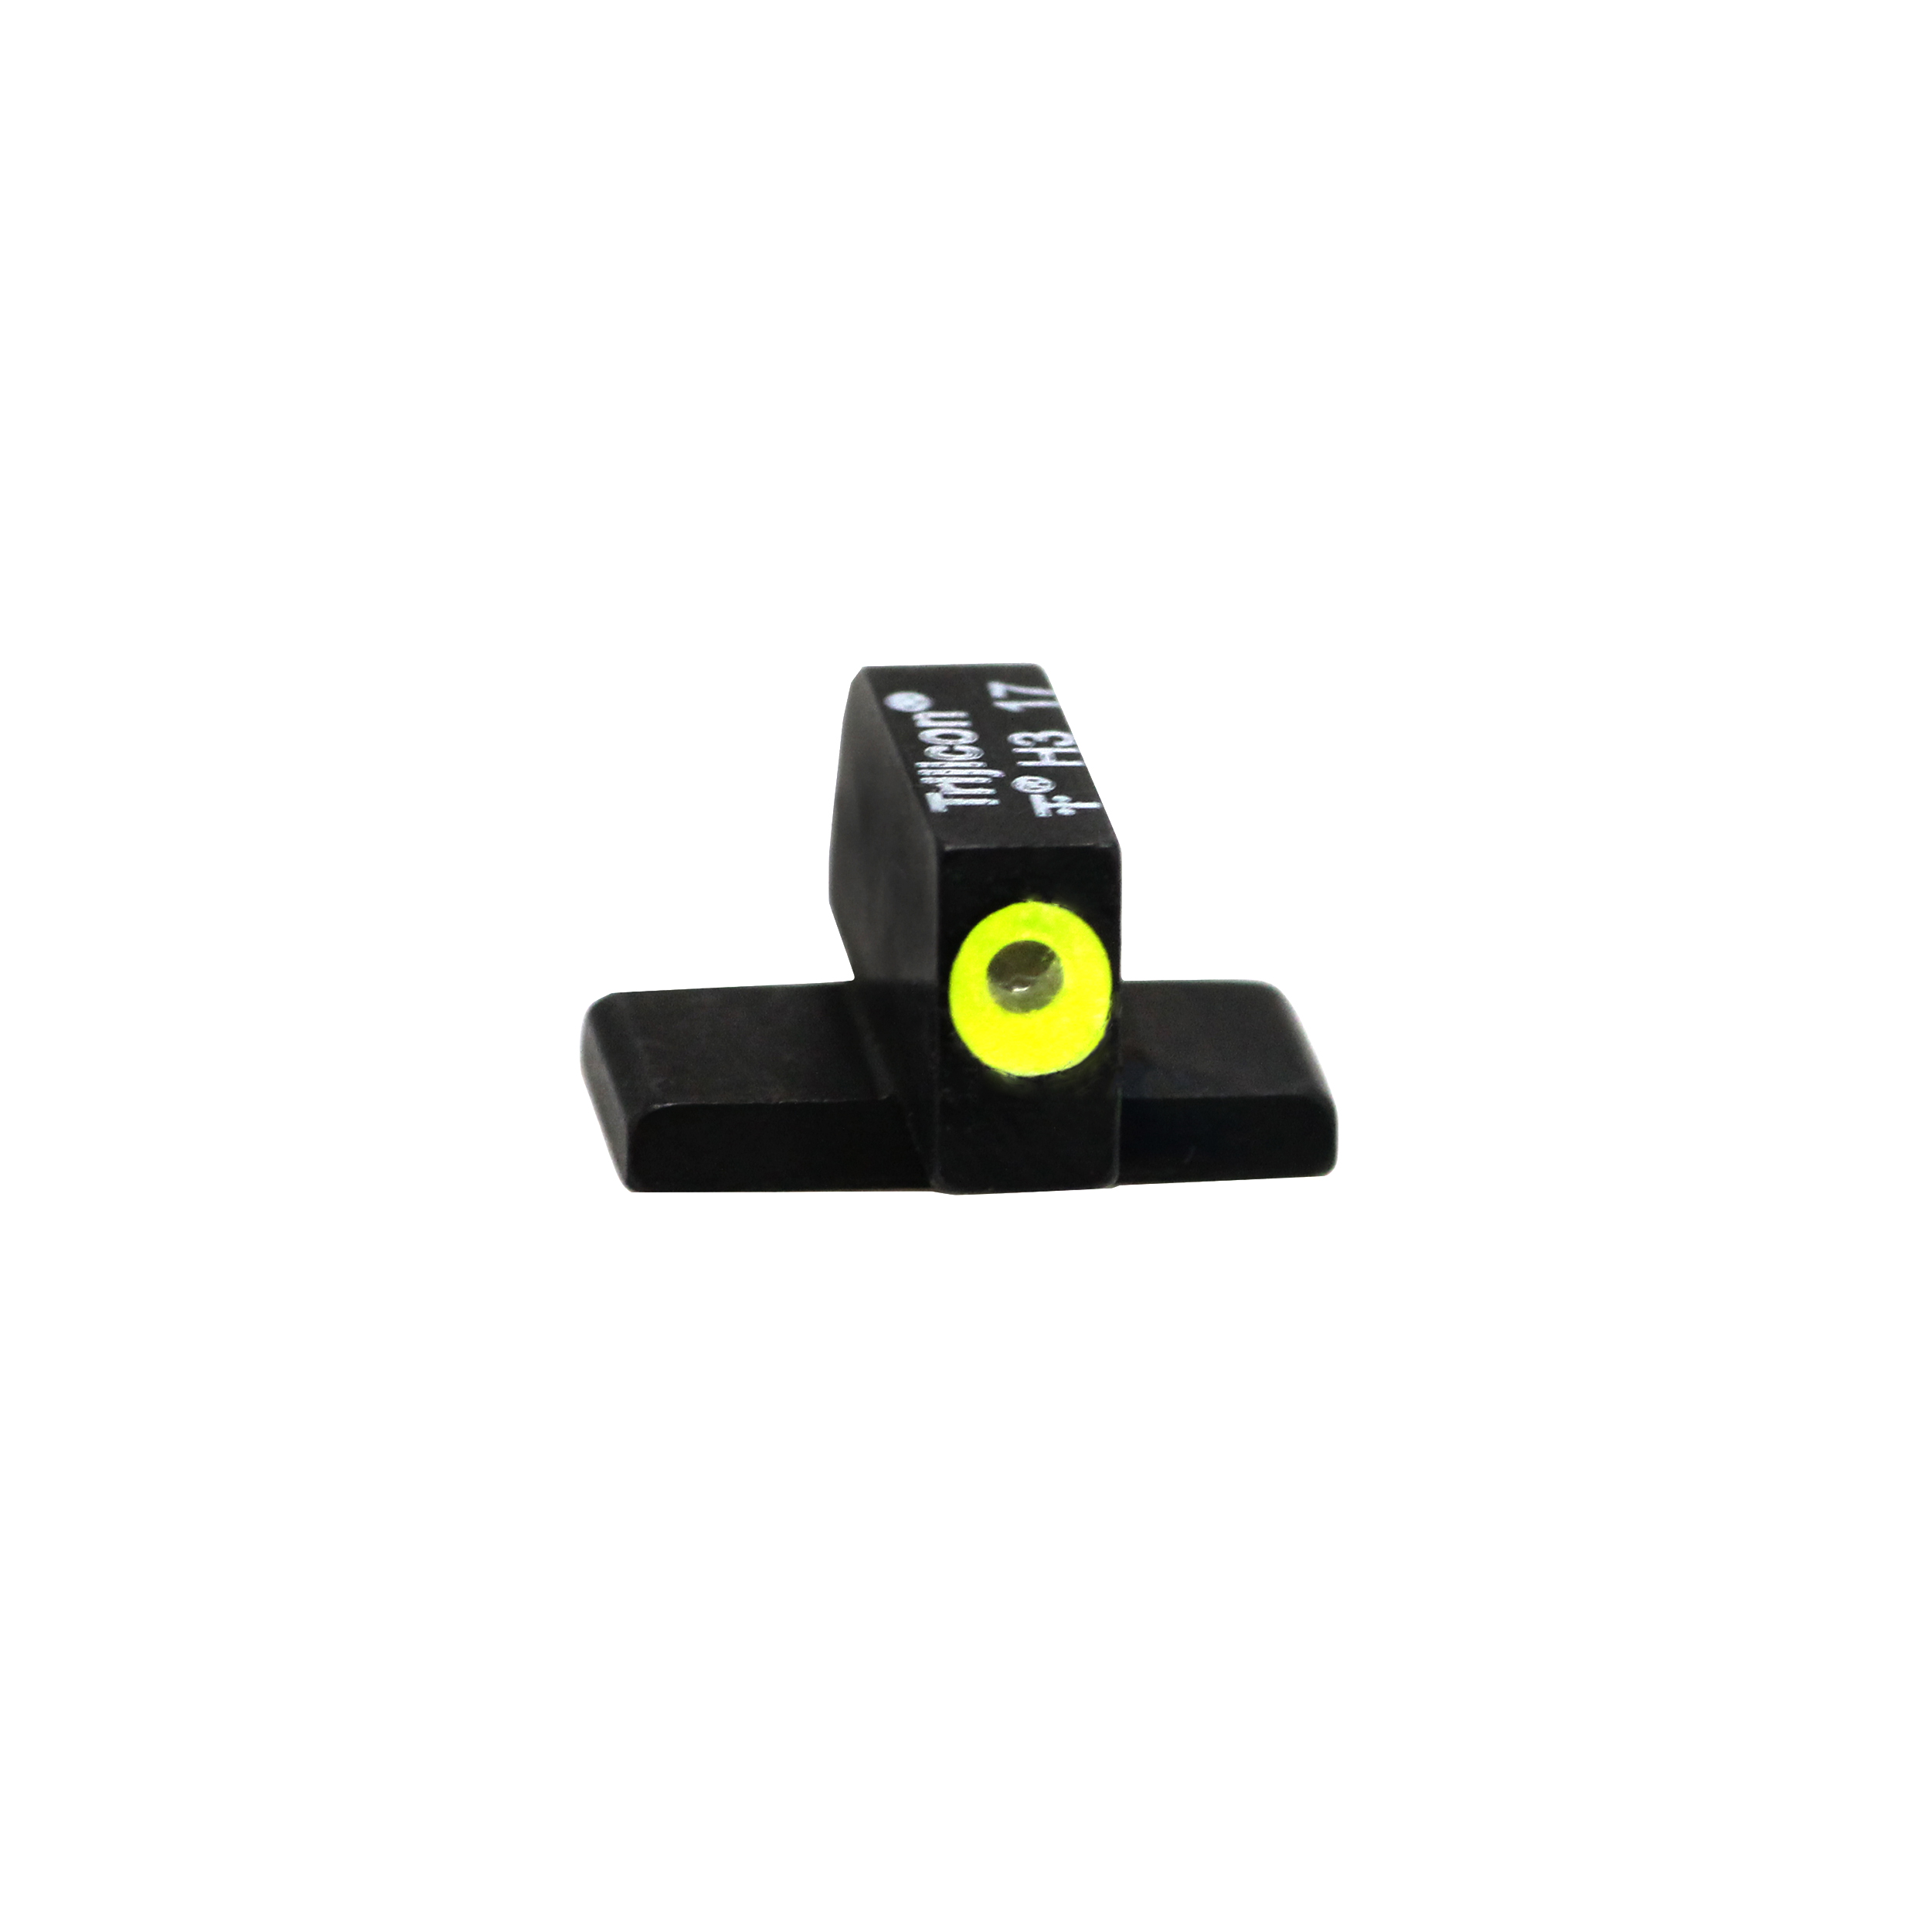 Trijicon HD XR Front Sight Sig Sauer 9mm and .357 Sig, Yellow Front Outline Lamo by Trijicon